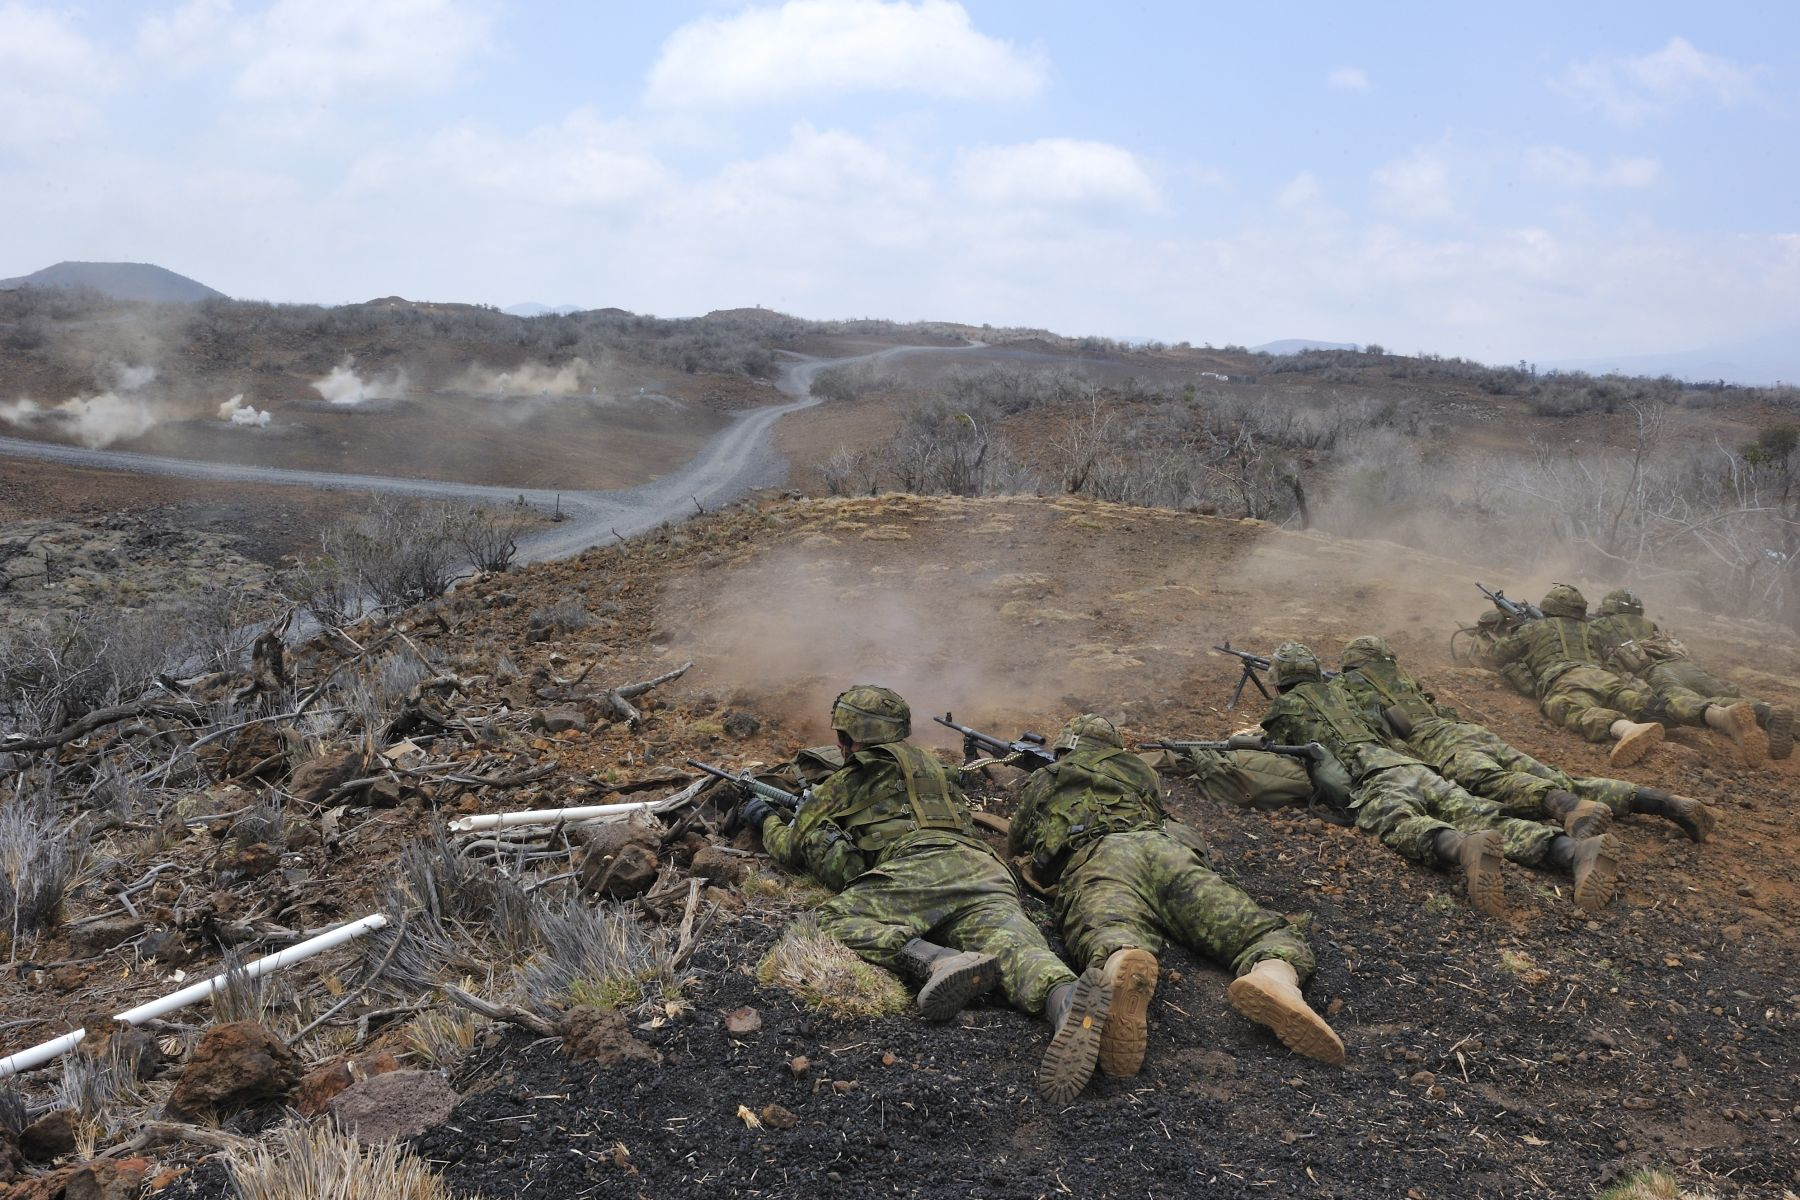 Members of 2 PPCLI firing towards targets on the range during the Live-Fire training exercise.